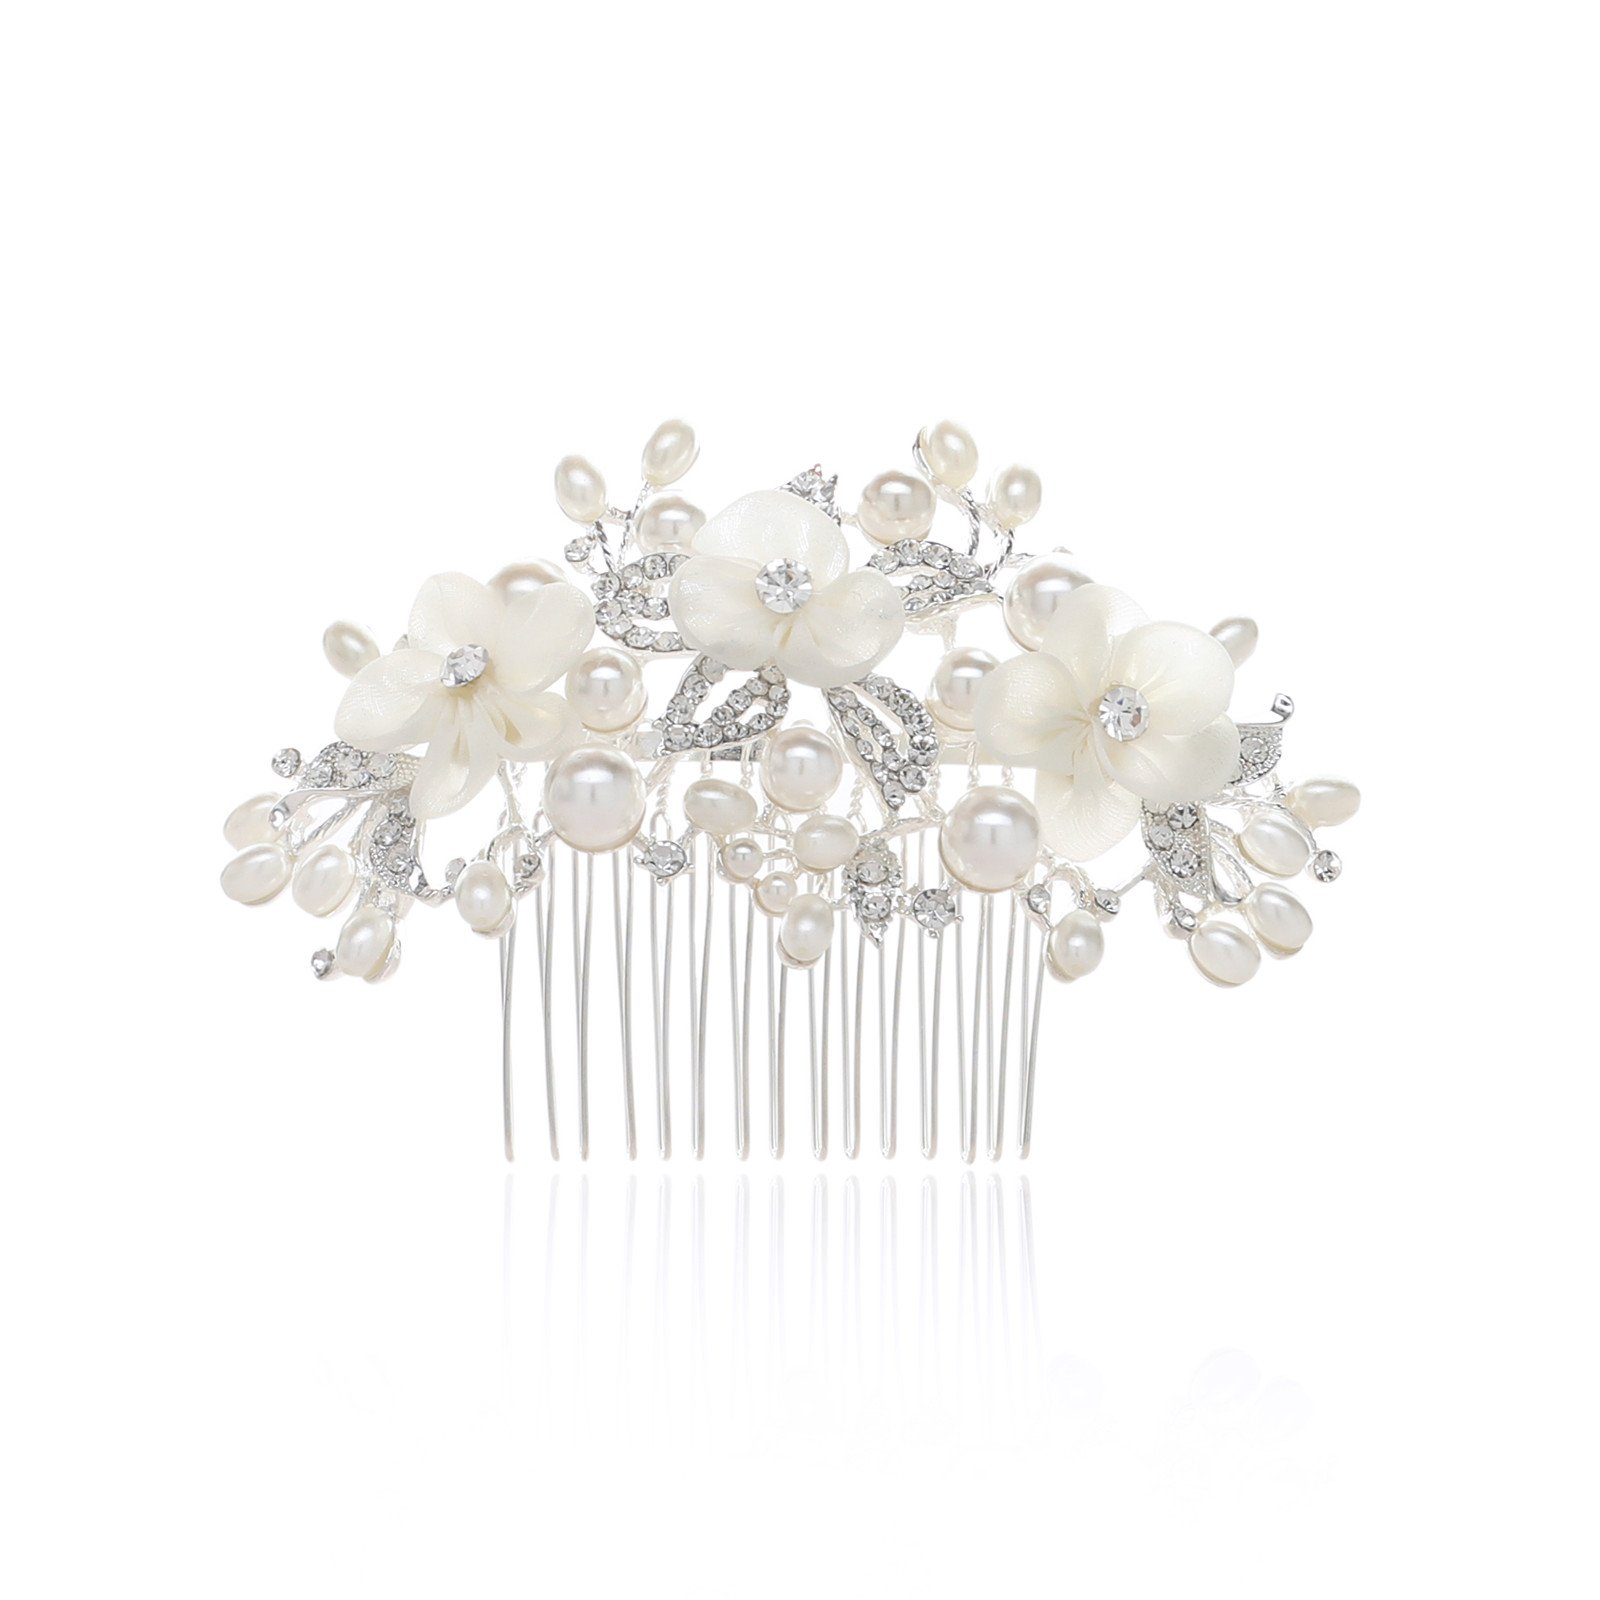 SWEETV Ivory Flower Wedding Hair Comb Pearl Clip Bridal Headpieces Women Hair Accessories for Brides